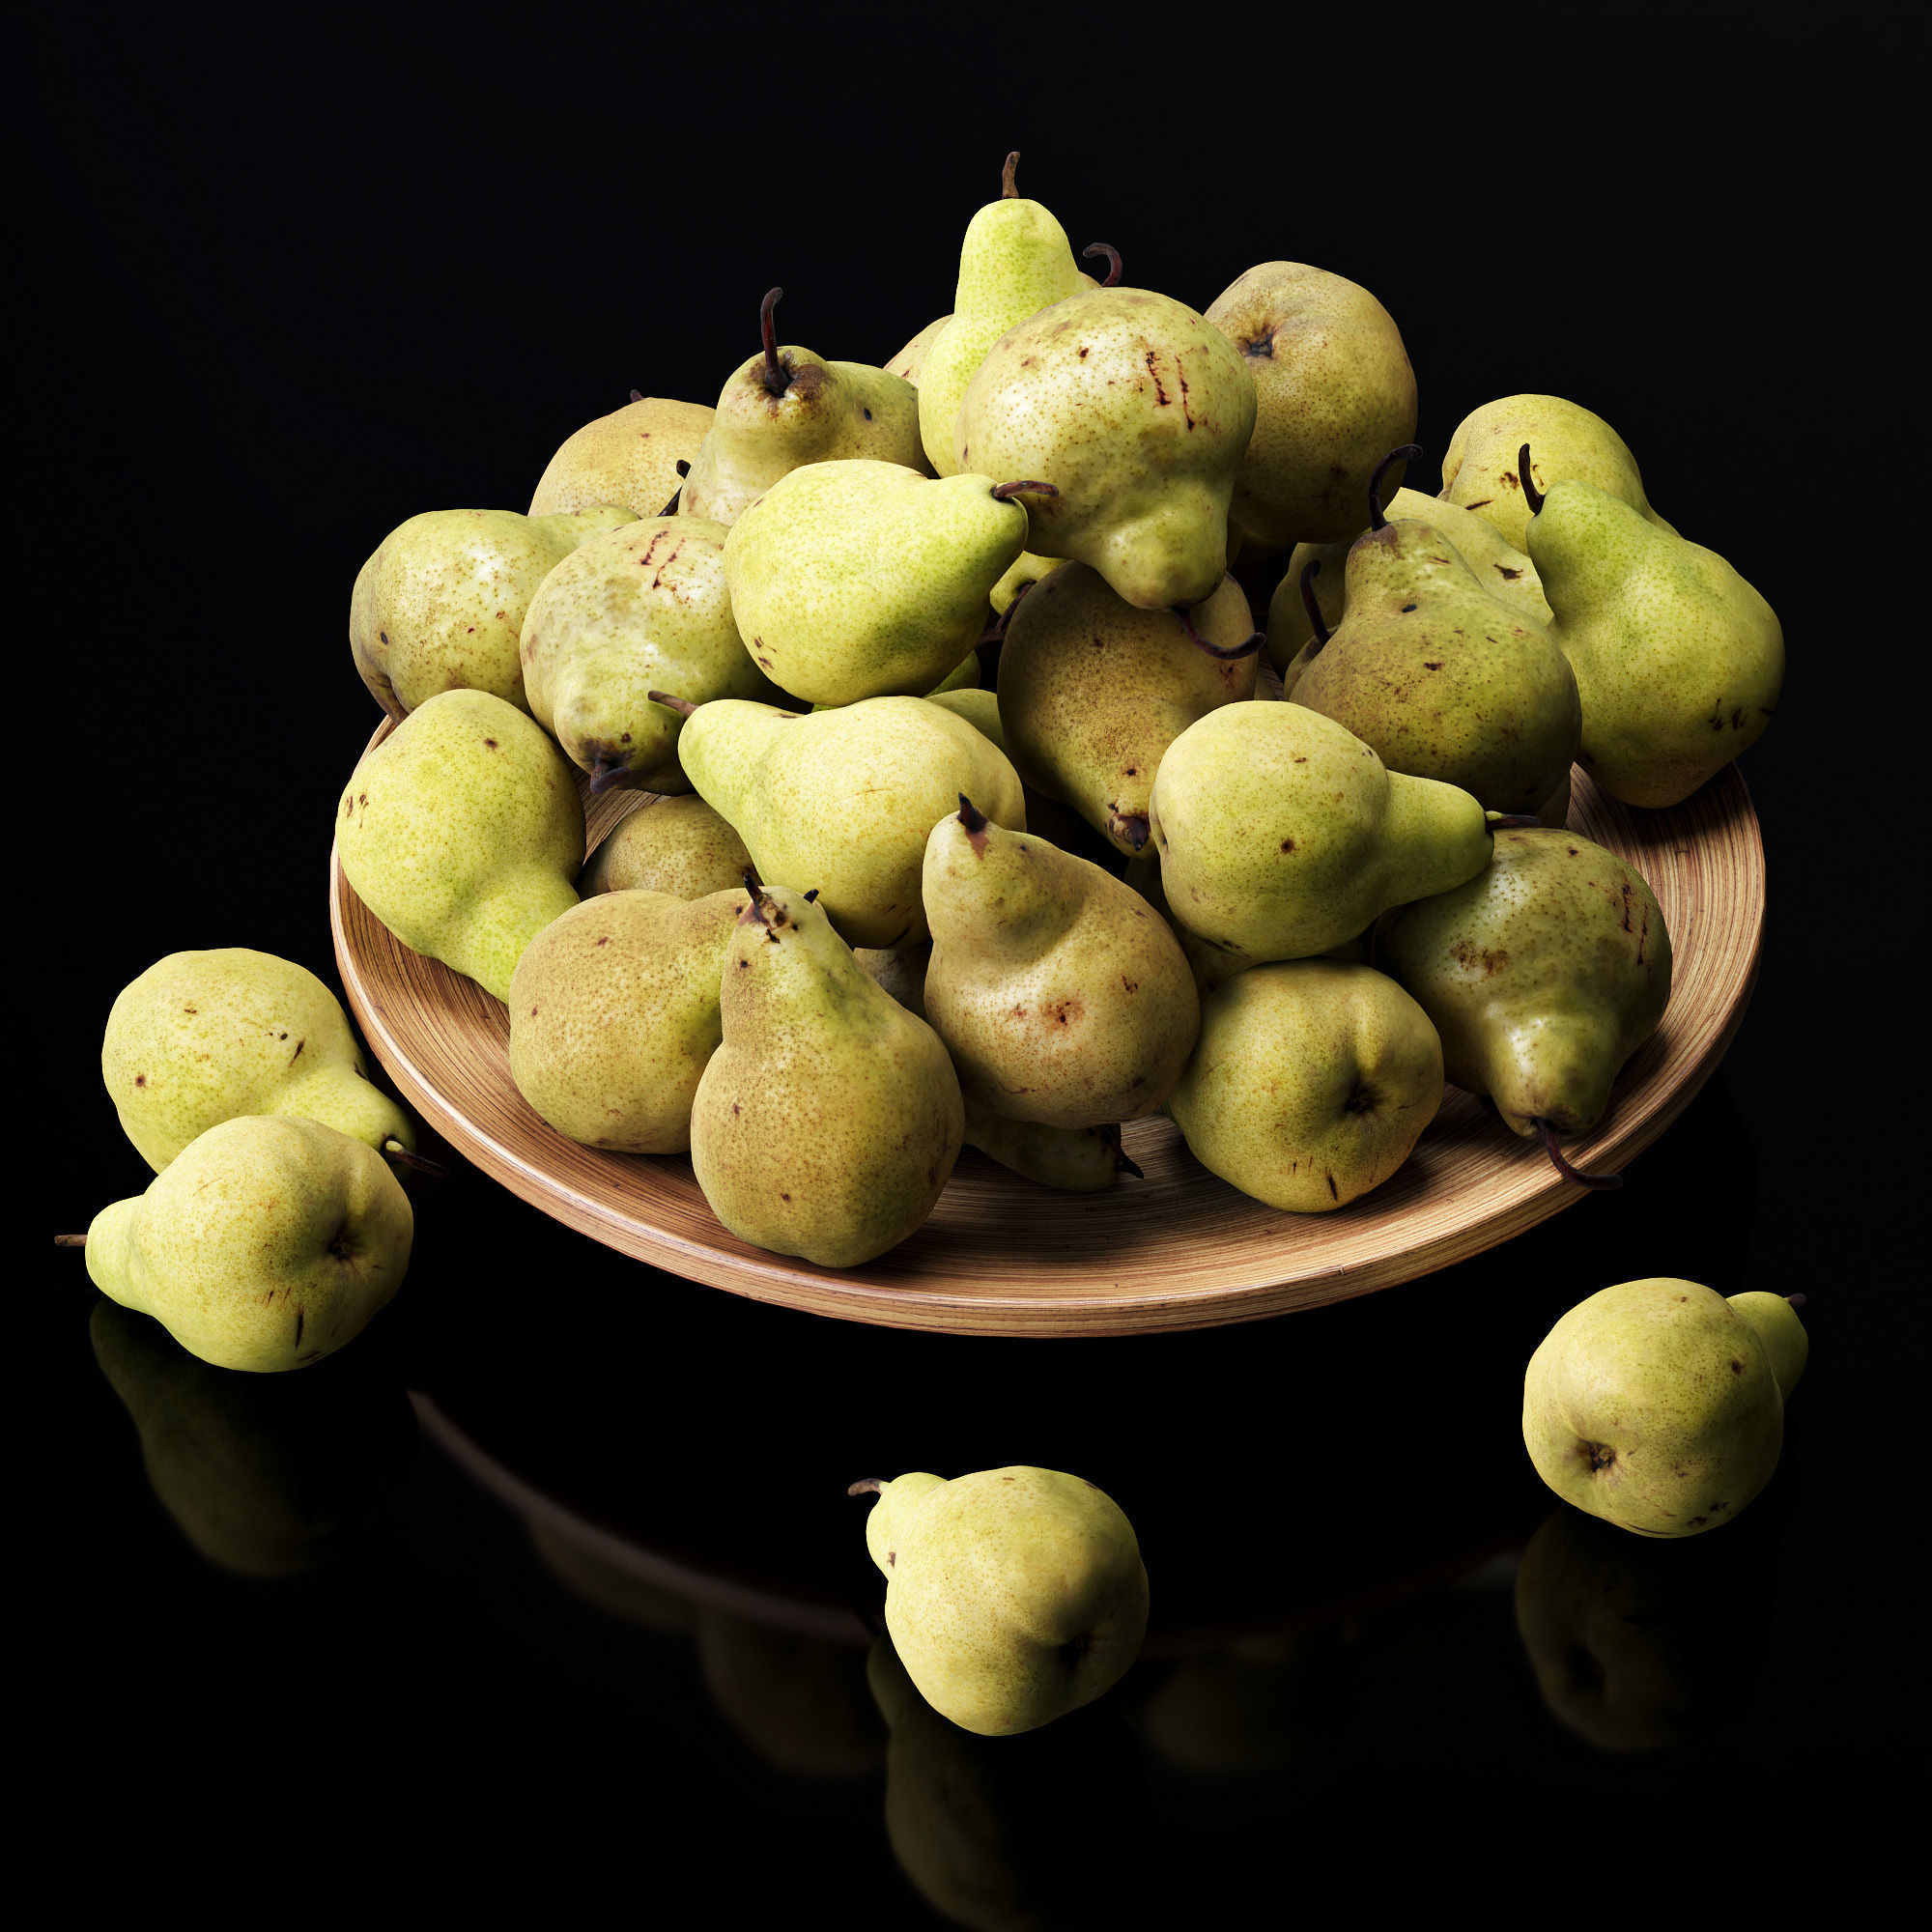 Pakham pears in a wooden fruit bowl